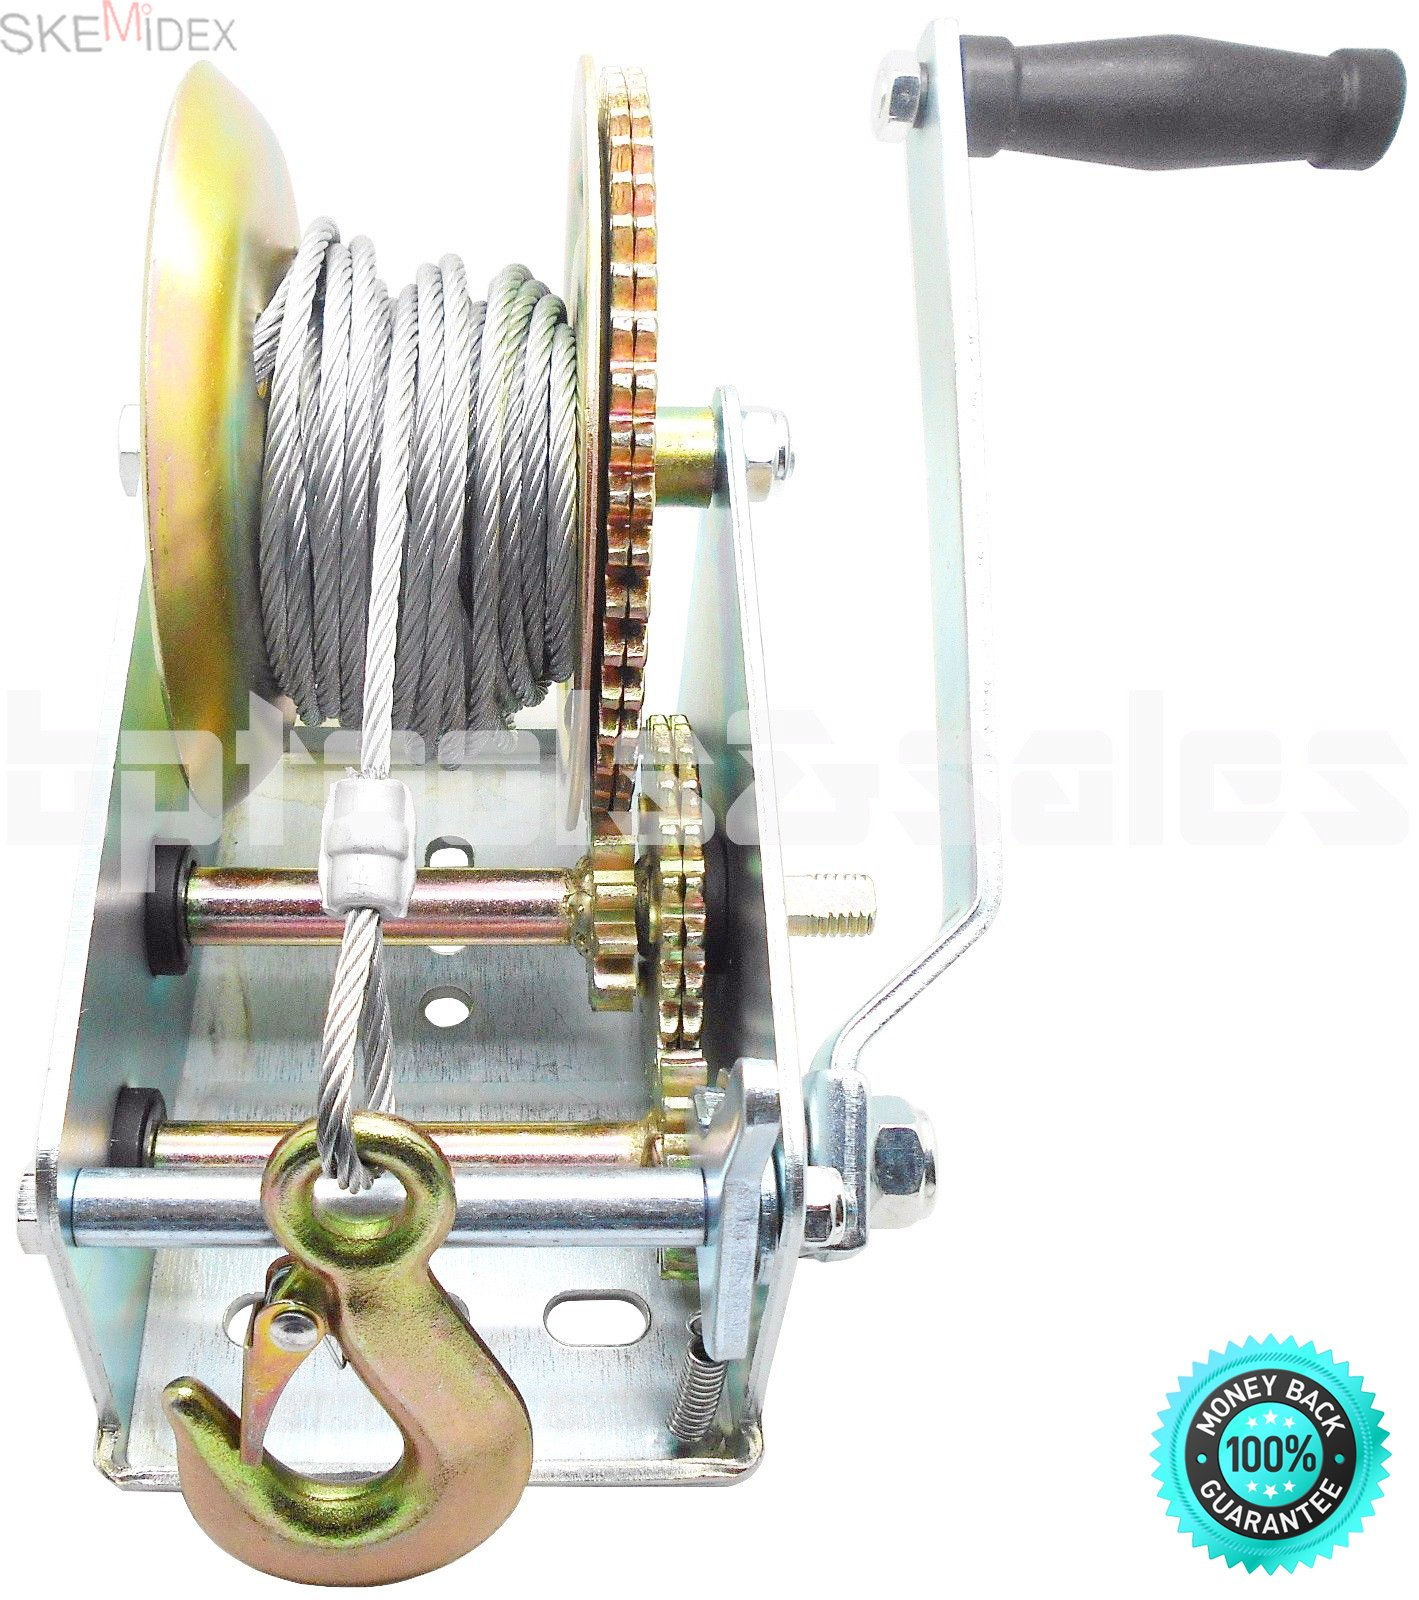 SKEMiDEX---3500lbs Dual Gear Hand Winch Hand Crank Manual Boat ATV RV Trailer 33ft Cable. Ideal for boat haulage or trailer mounting Conveniently drilled holes in base allow easy mouting